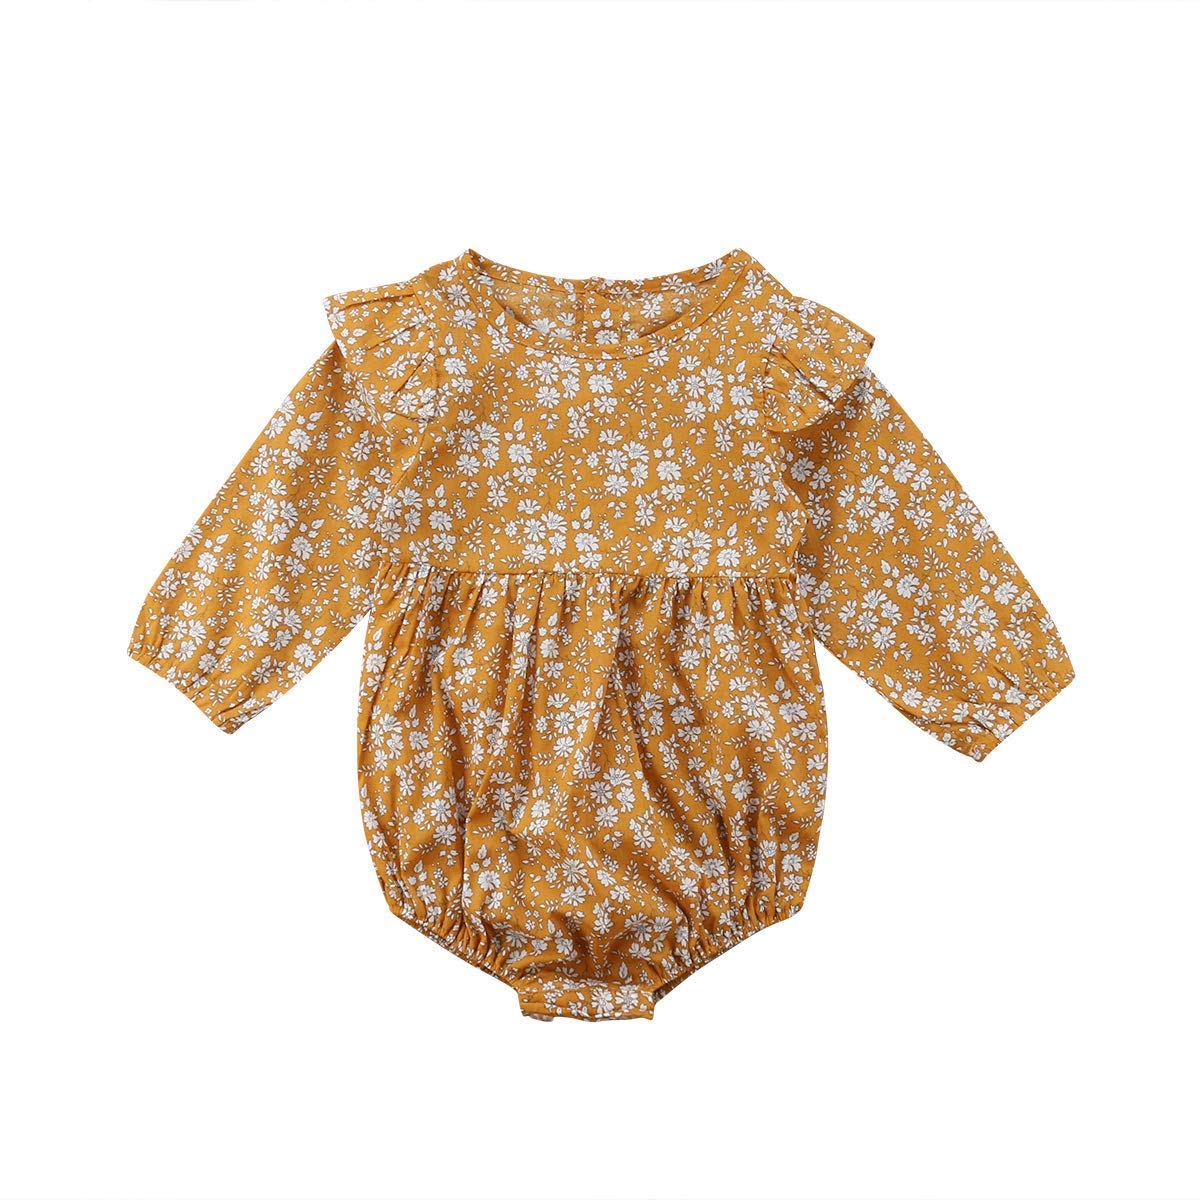 a636d4eadf2ca Laraandlory Baby Clothes Girls Baby Romper Coverall Shoulder Ruffle Flower  Back Button Cute Baby Shower Birthday Celebration (0-3Y)